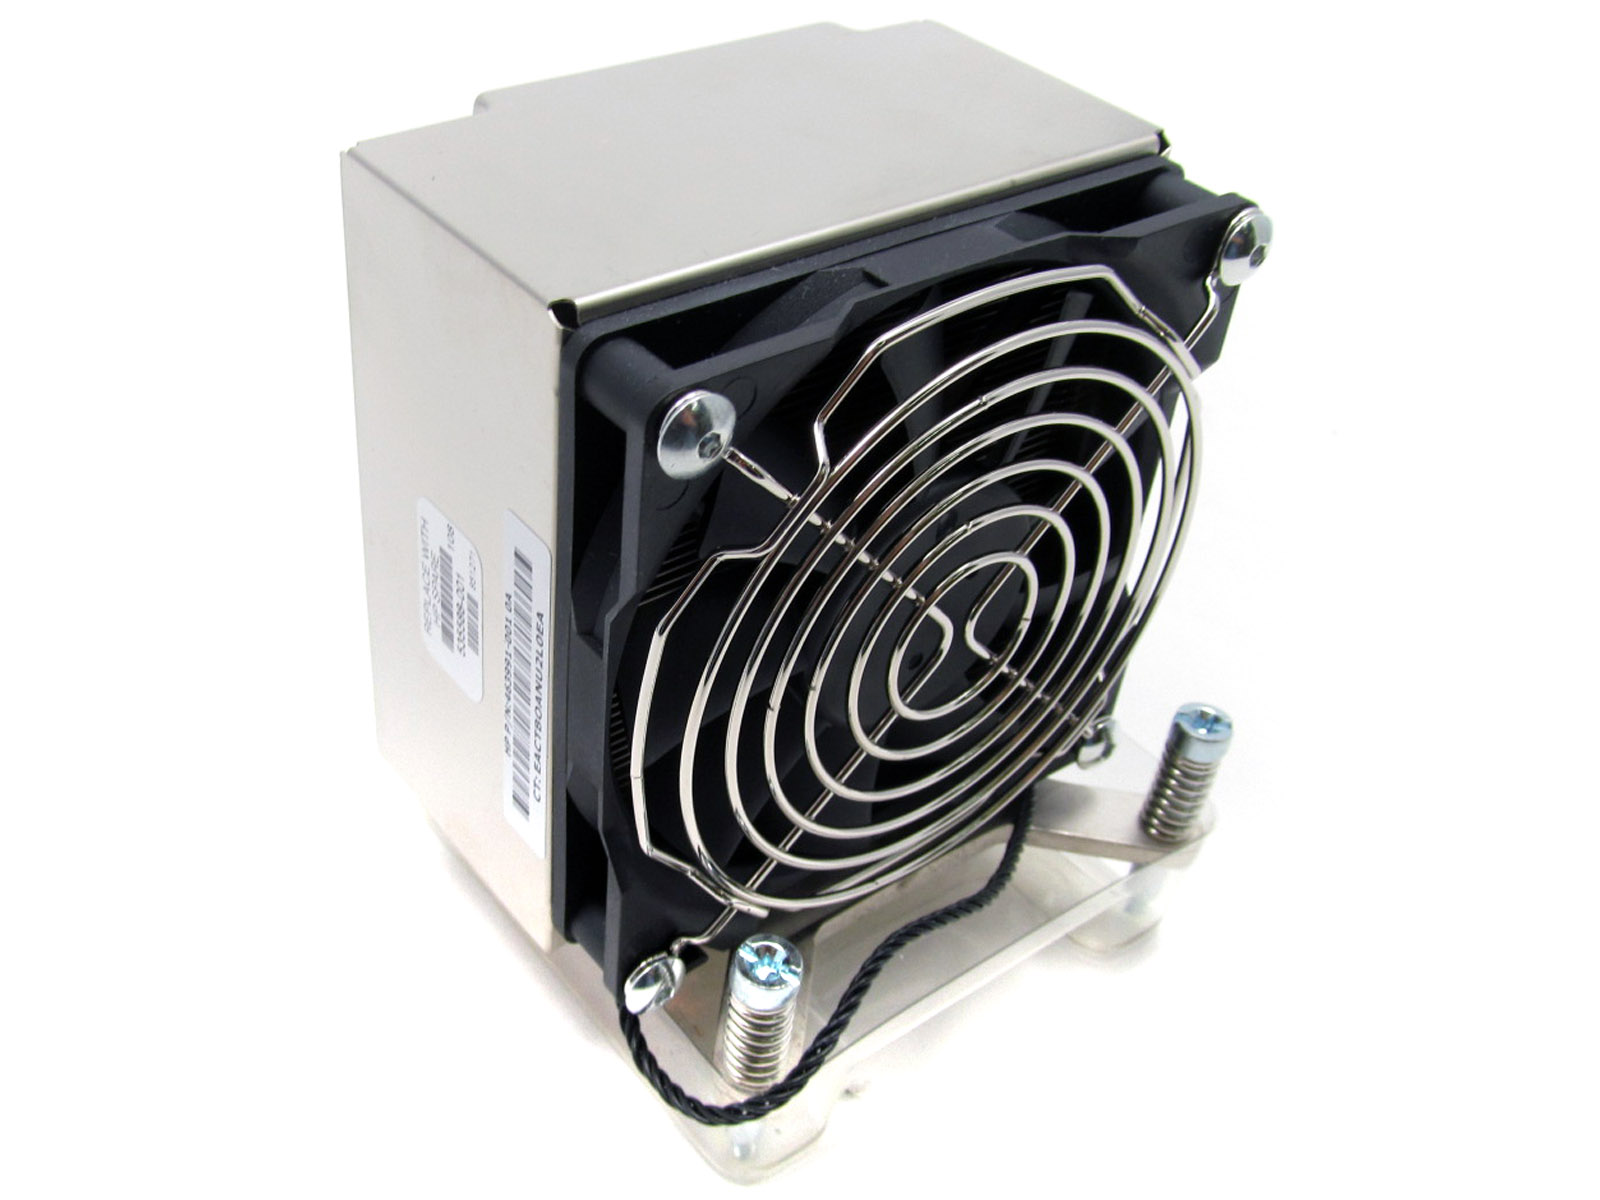 Z800 130w heatsink and fan